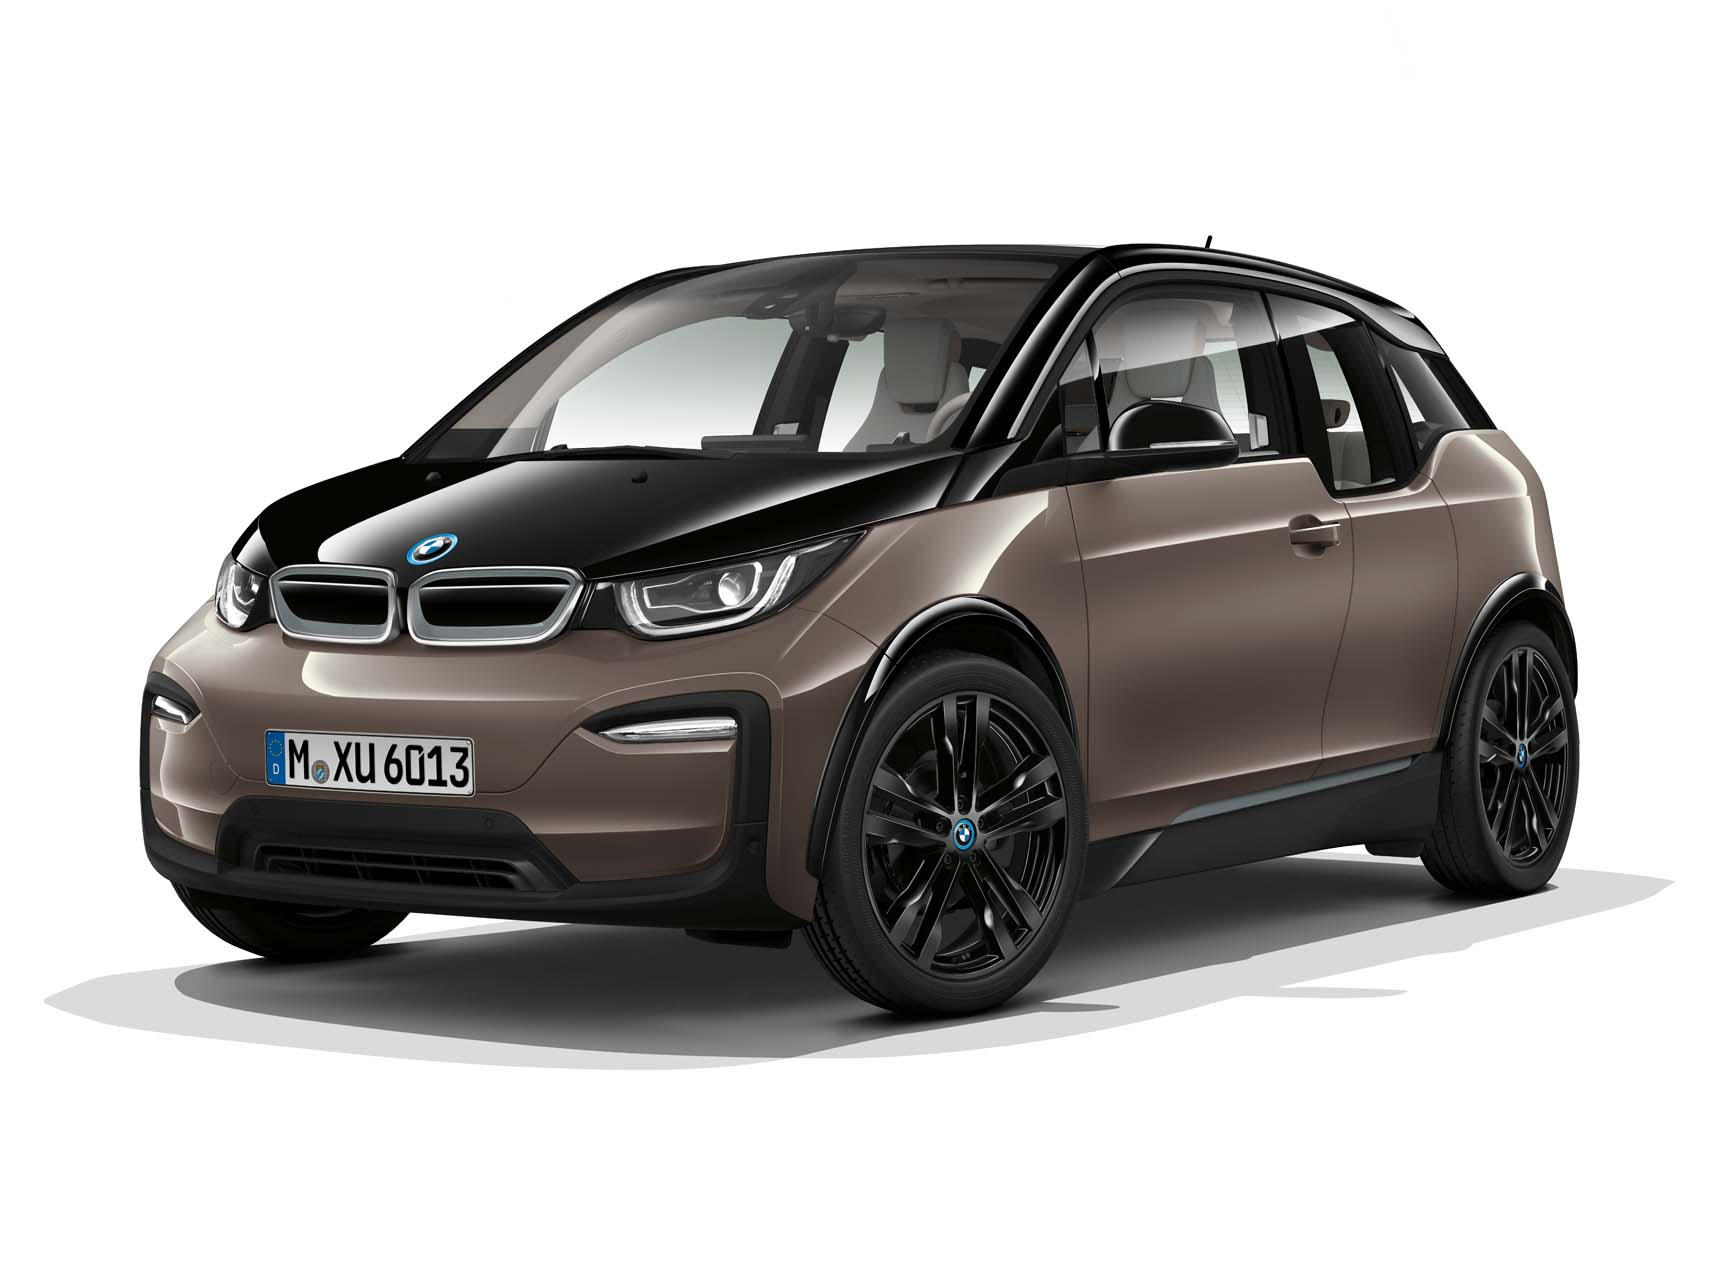 2019 Bmw I3 To Get Bigger Battery With 153 Mile Range